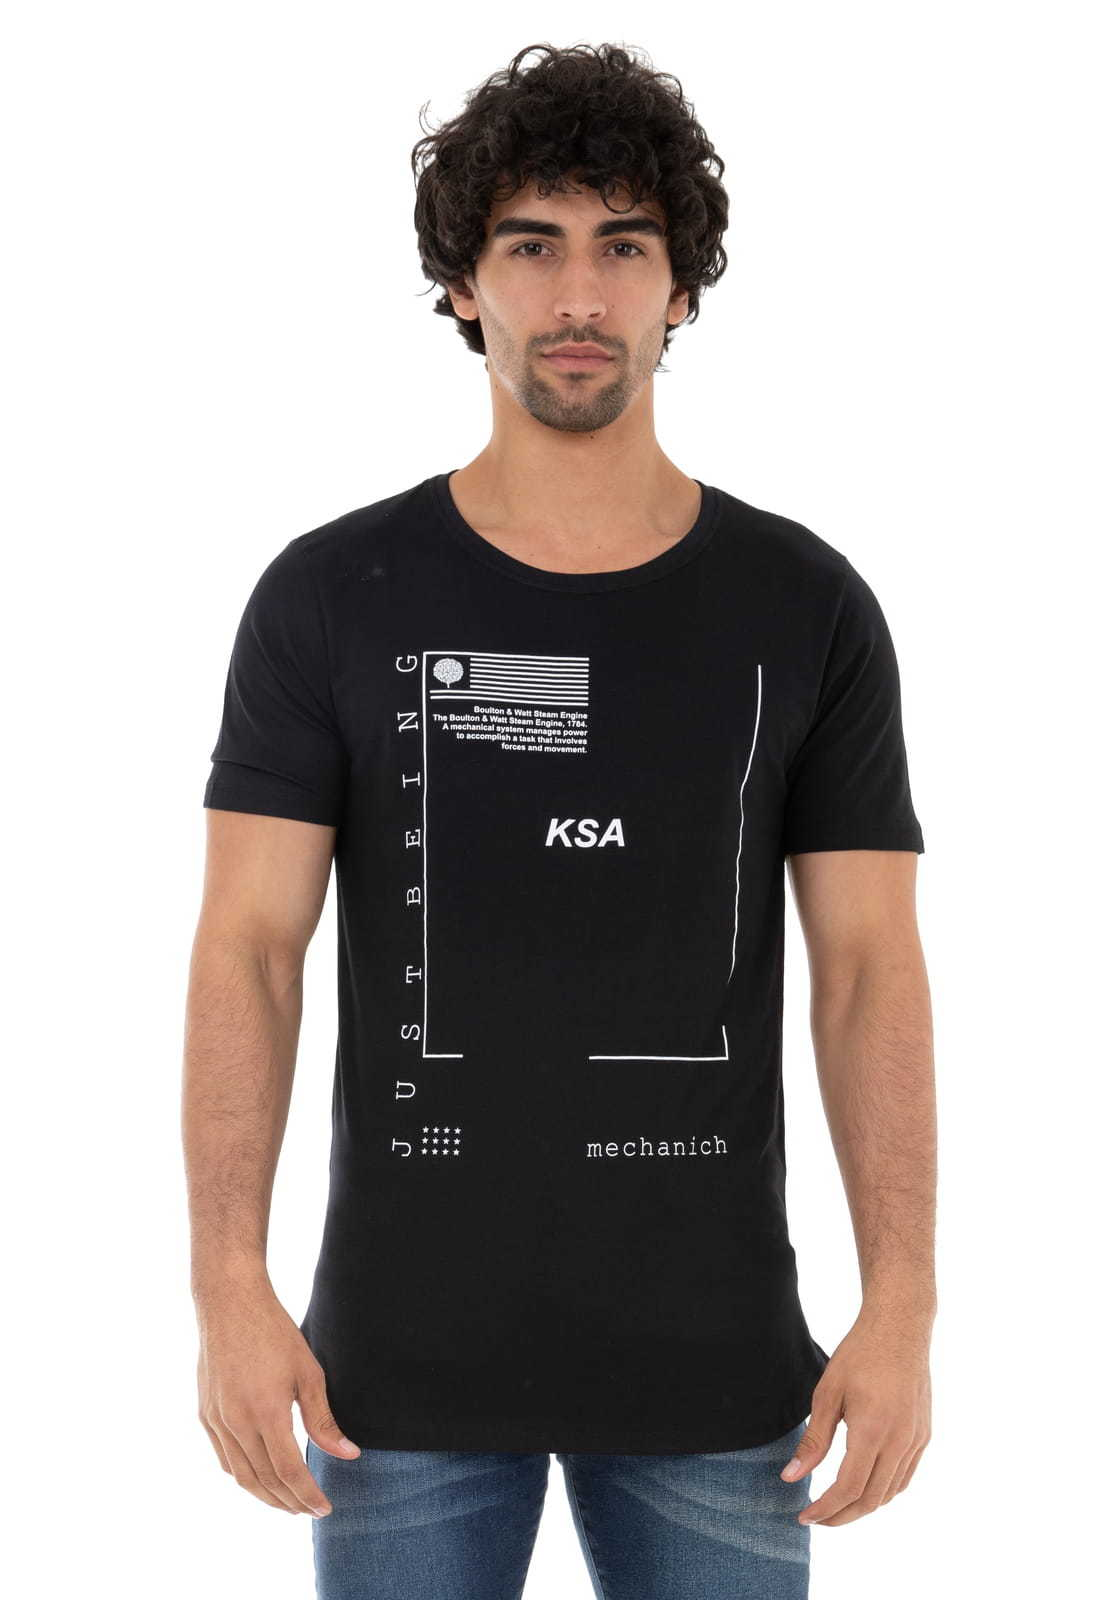 Camiseta Longline Just Being KSA da árvore